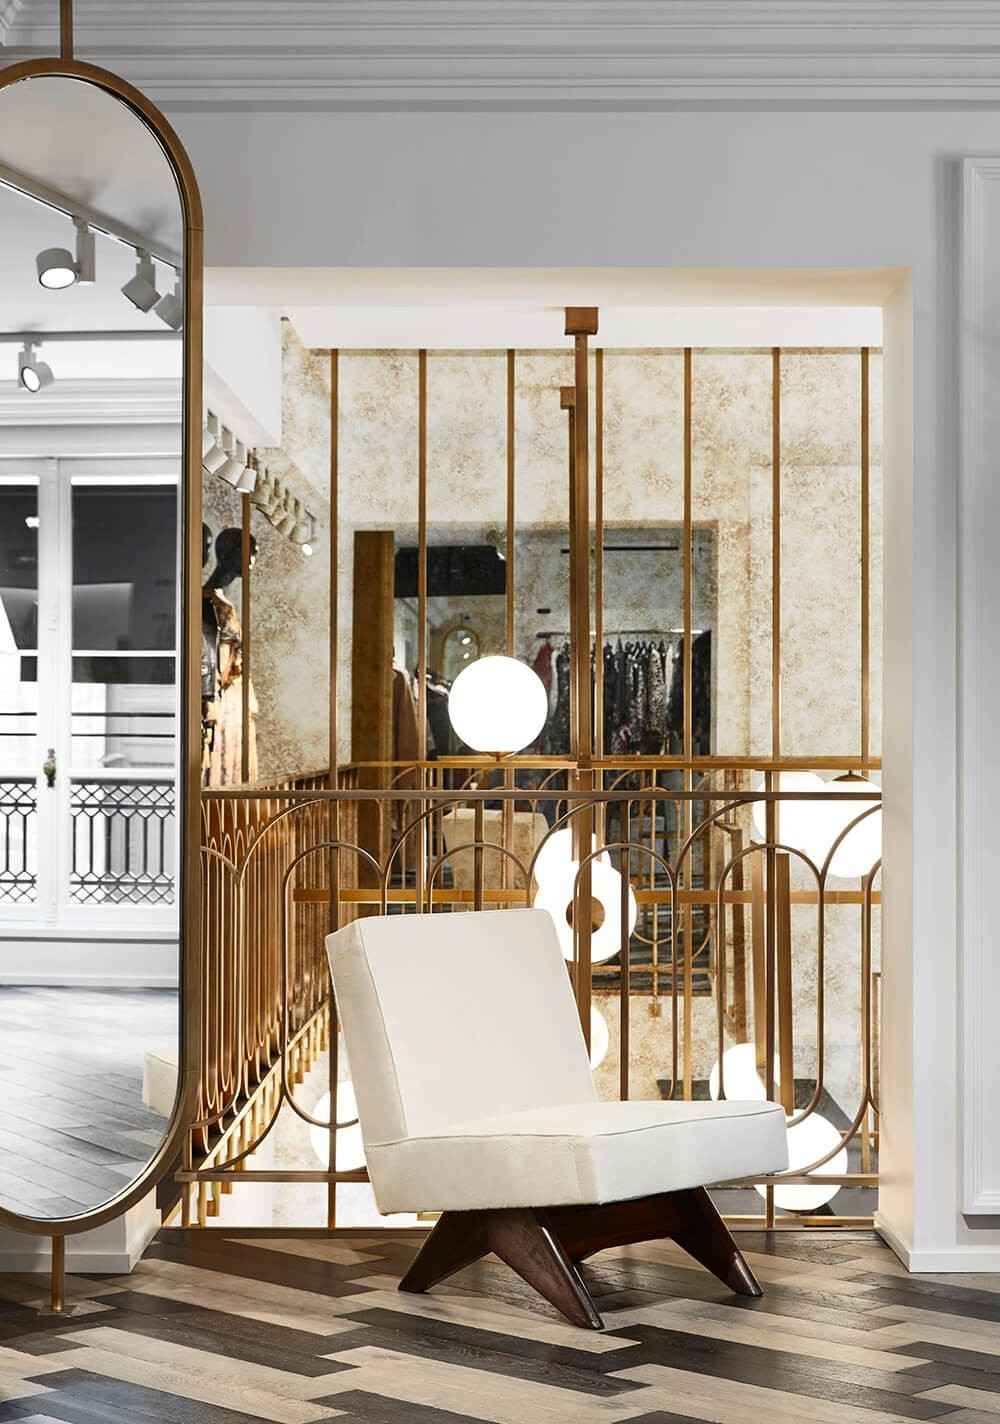 5 Boutique Interiors that Made an Enduring Impact in Defining Luxury 2 boutique interiors 5 Boutique Interiors that Made an Enduring Impact in Defining Luxury 5 Boutique Interiors that Made an Enduring Impact in Defining Luxury 2